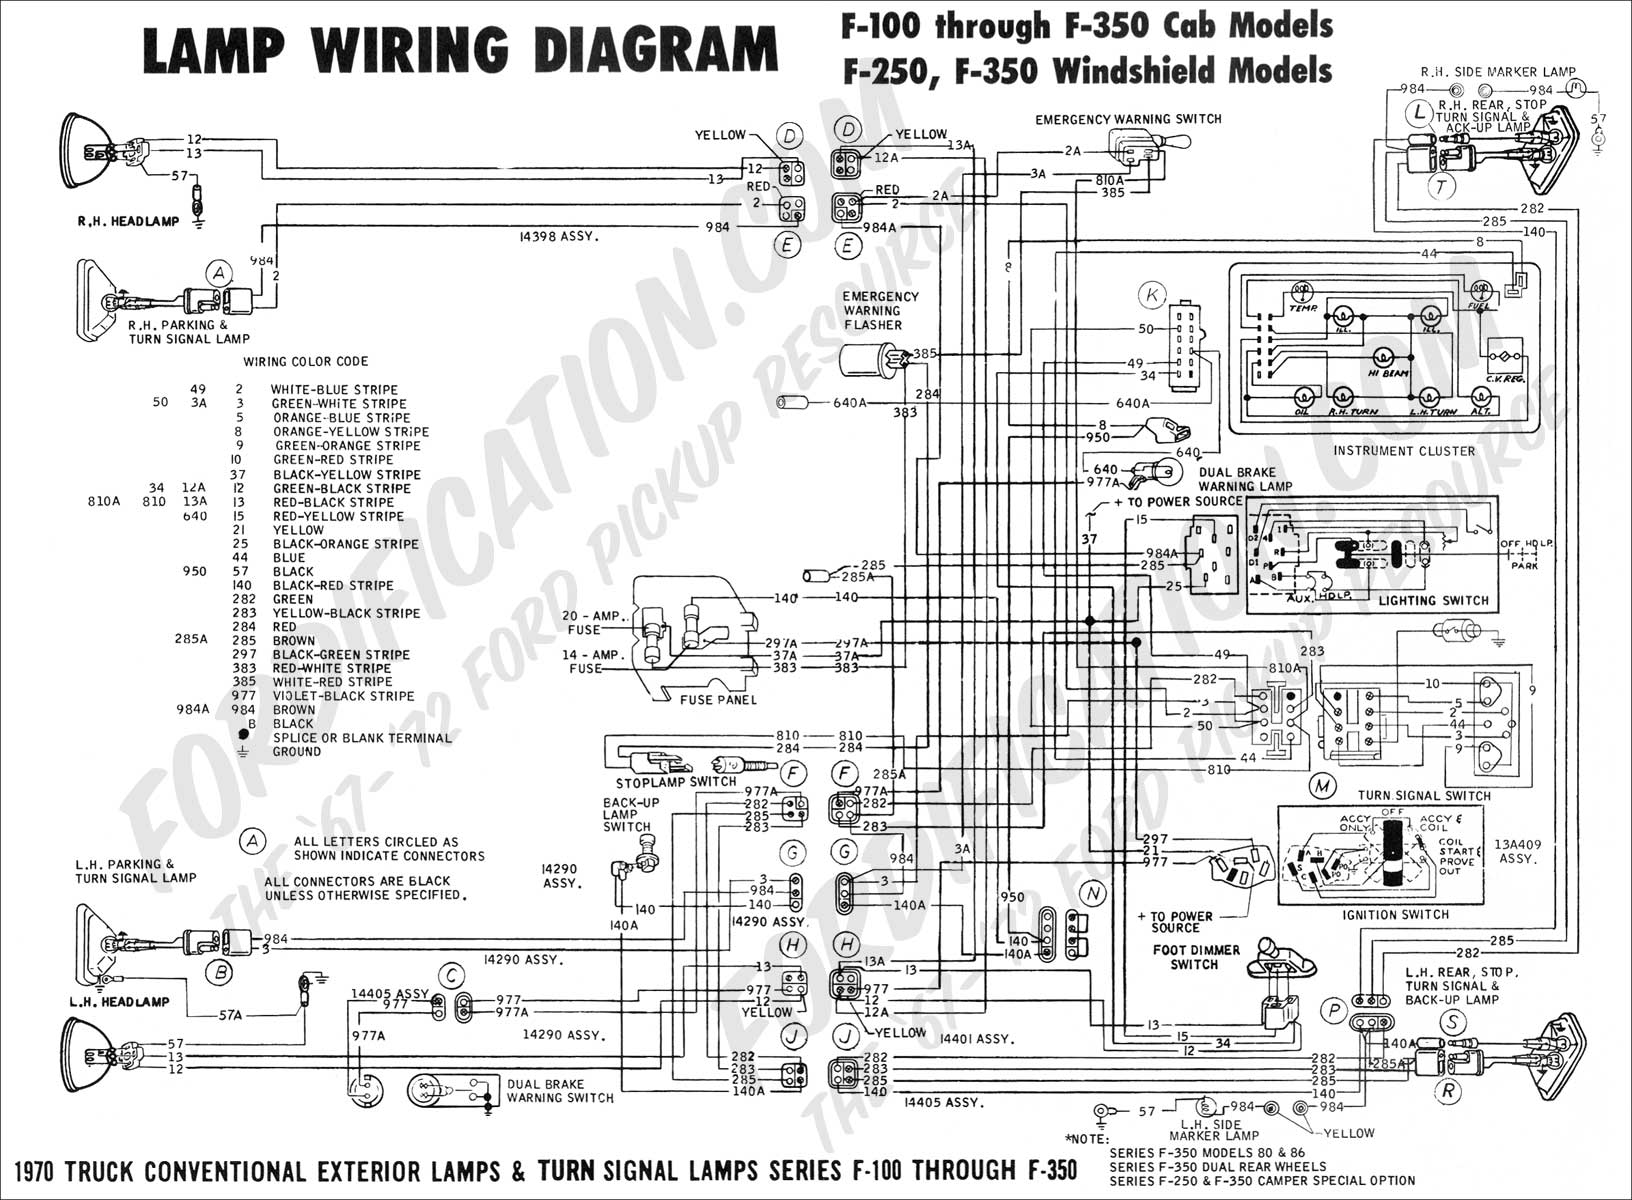 wiring diagram_70ext lights01?resize=665%2C489 wiring harness diagram for 4610 ford tractor the wiring diagram ford wiring harness diagrams at crackthecode.co